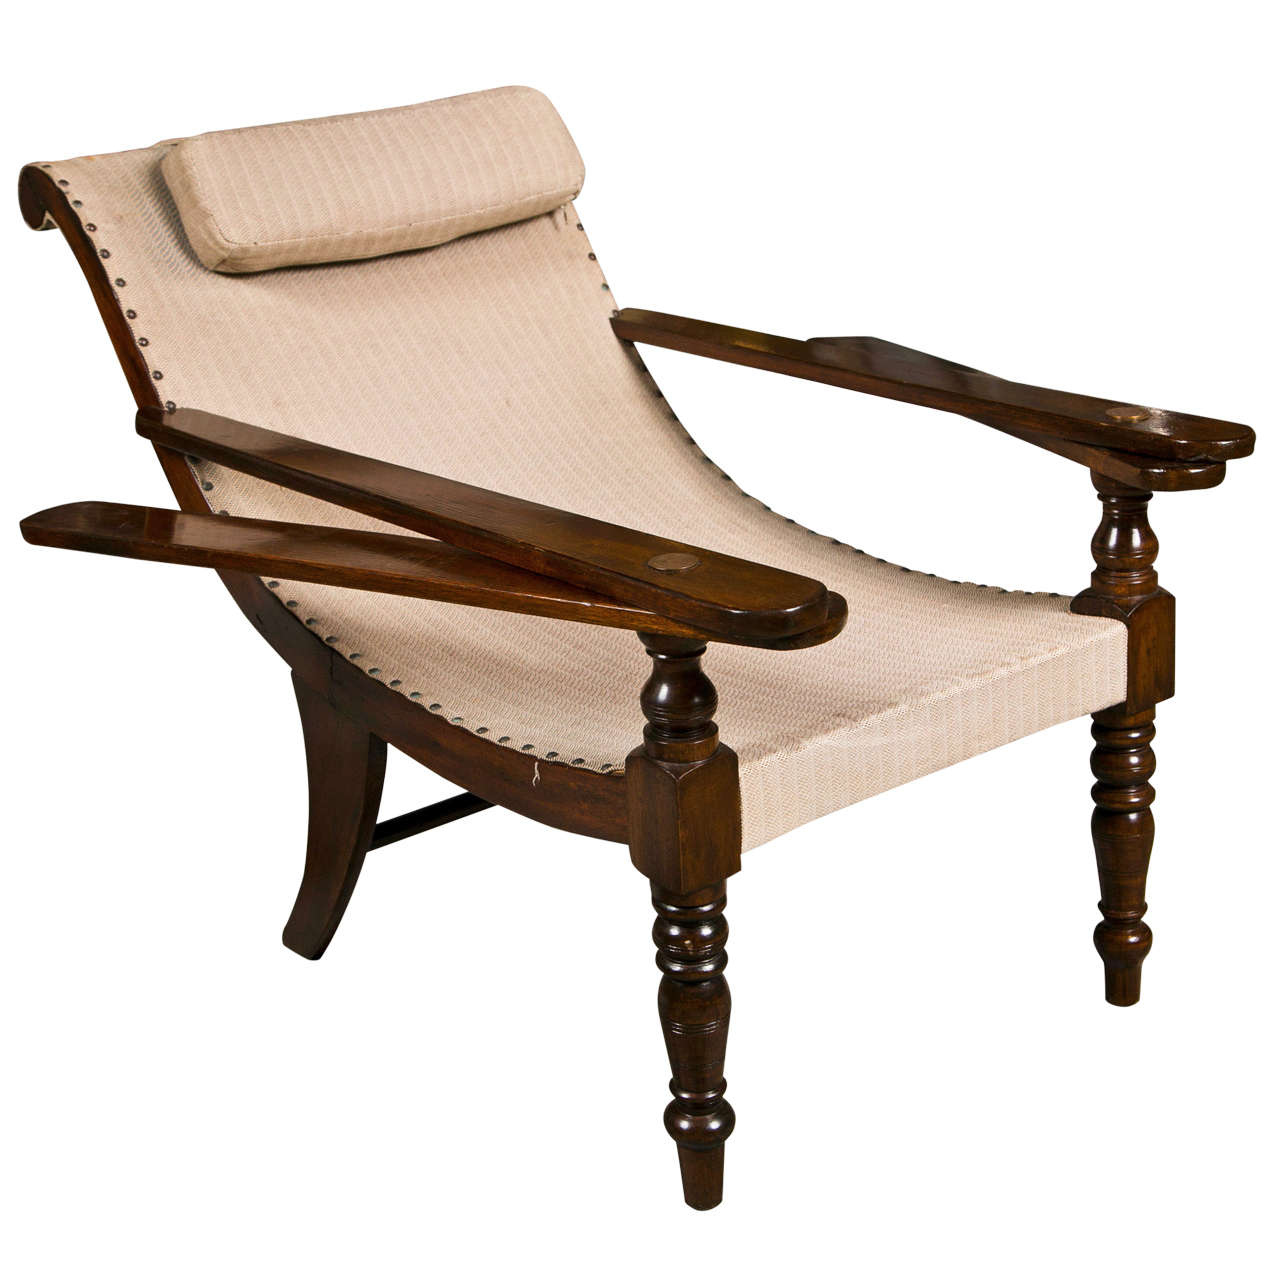 american leather swing chair covers for rent anglo indian plantation at 1stdibs